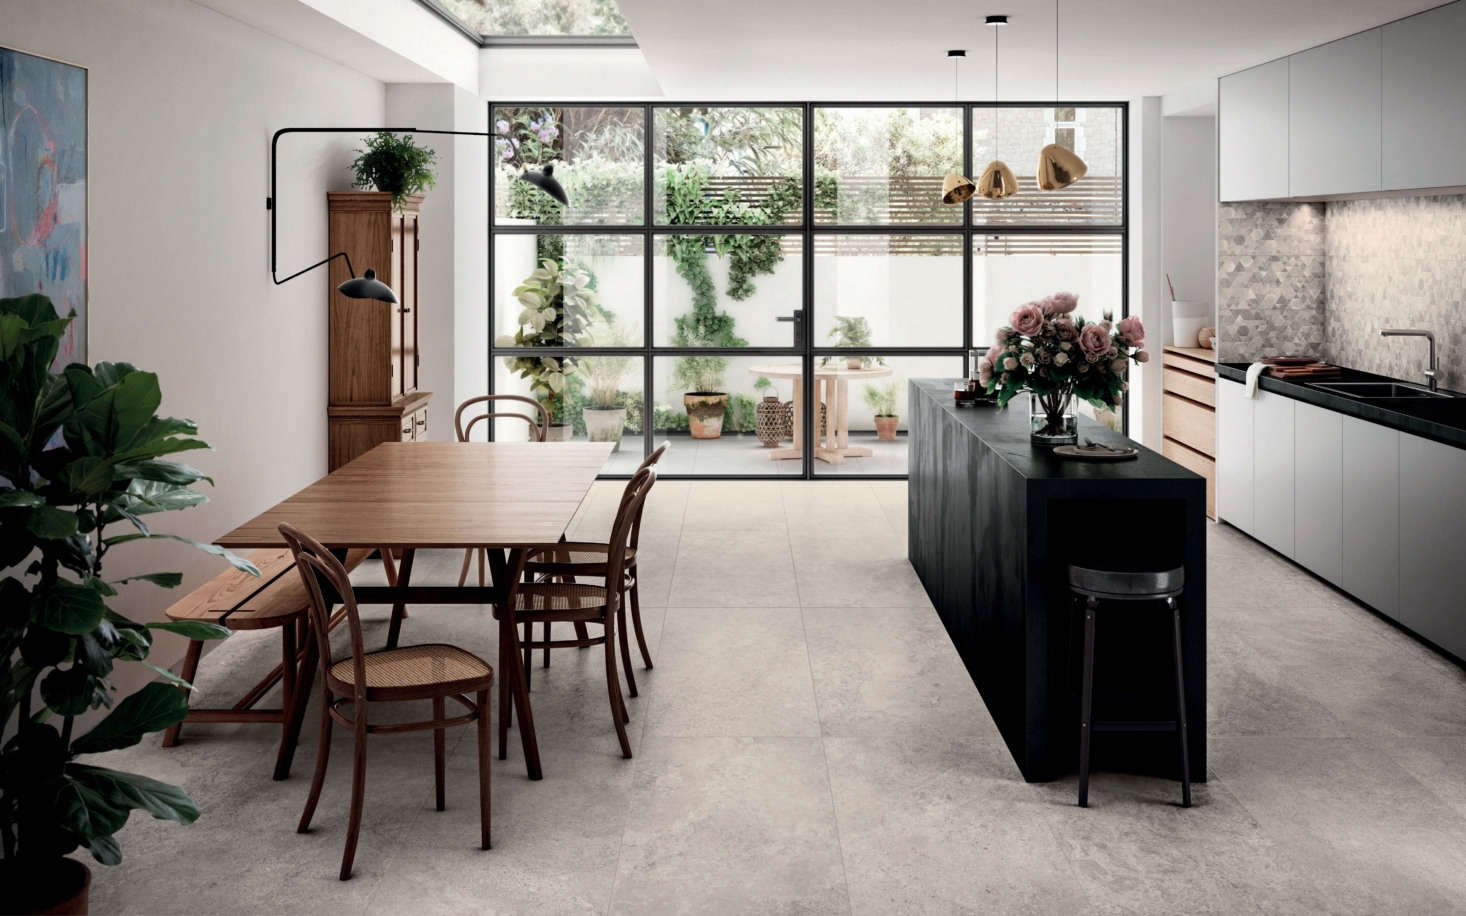 The natural-looking Freedomtile, designed by Ceramiche Piemme to look like Hauteville limestone, is actually the product of modern digital technologies, and is available in 3D iterations for wall applications as well.